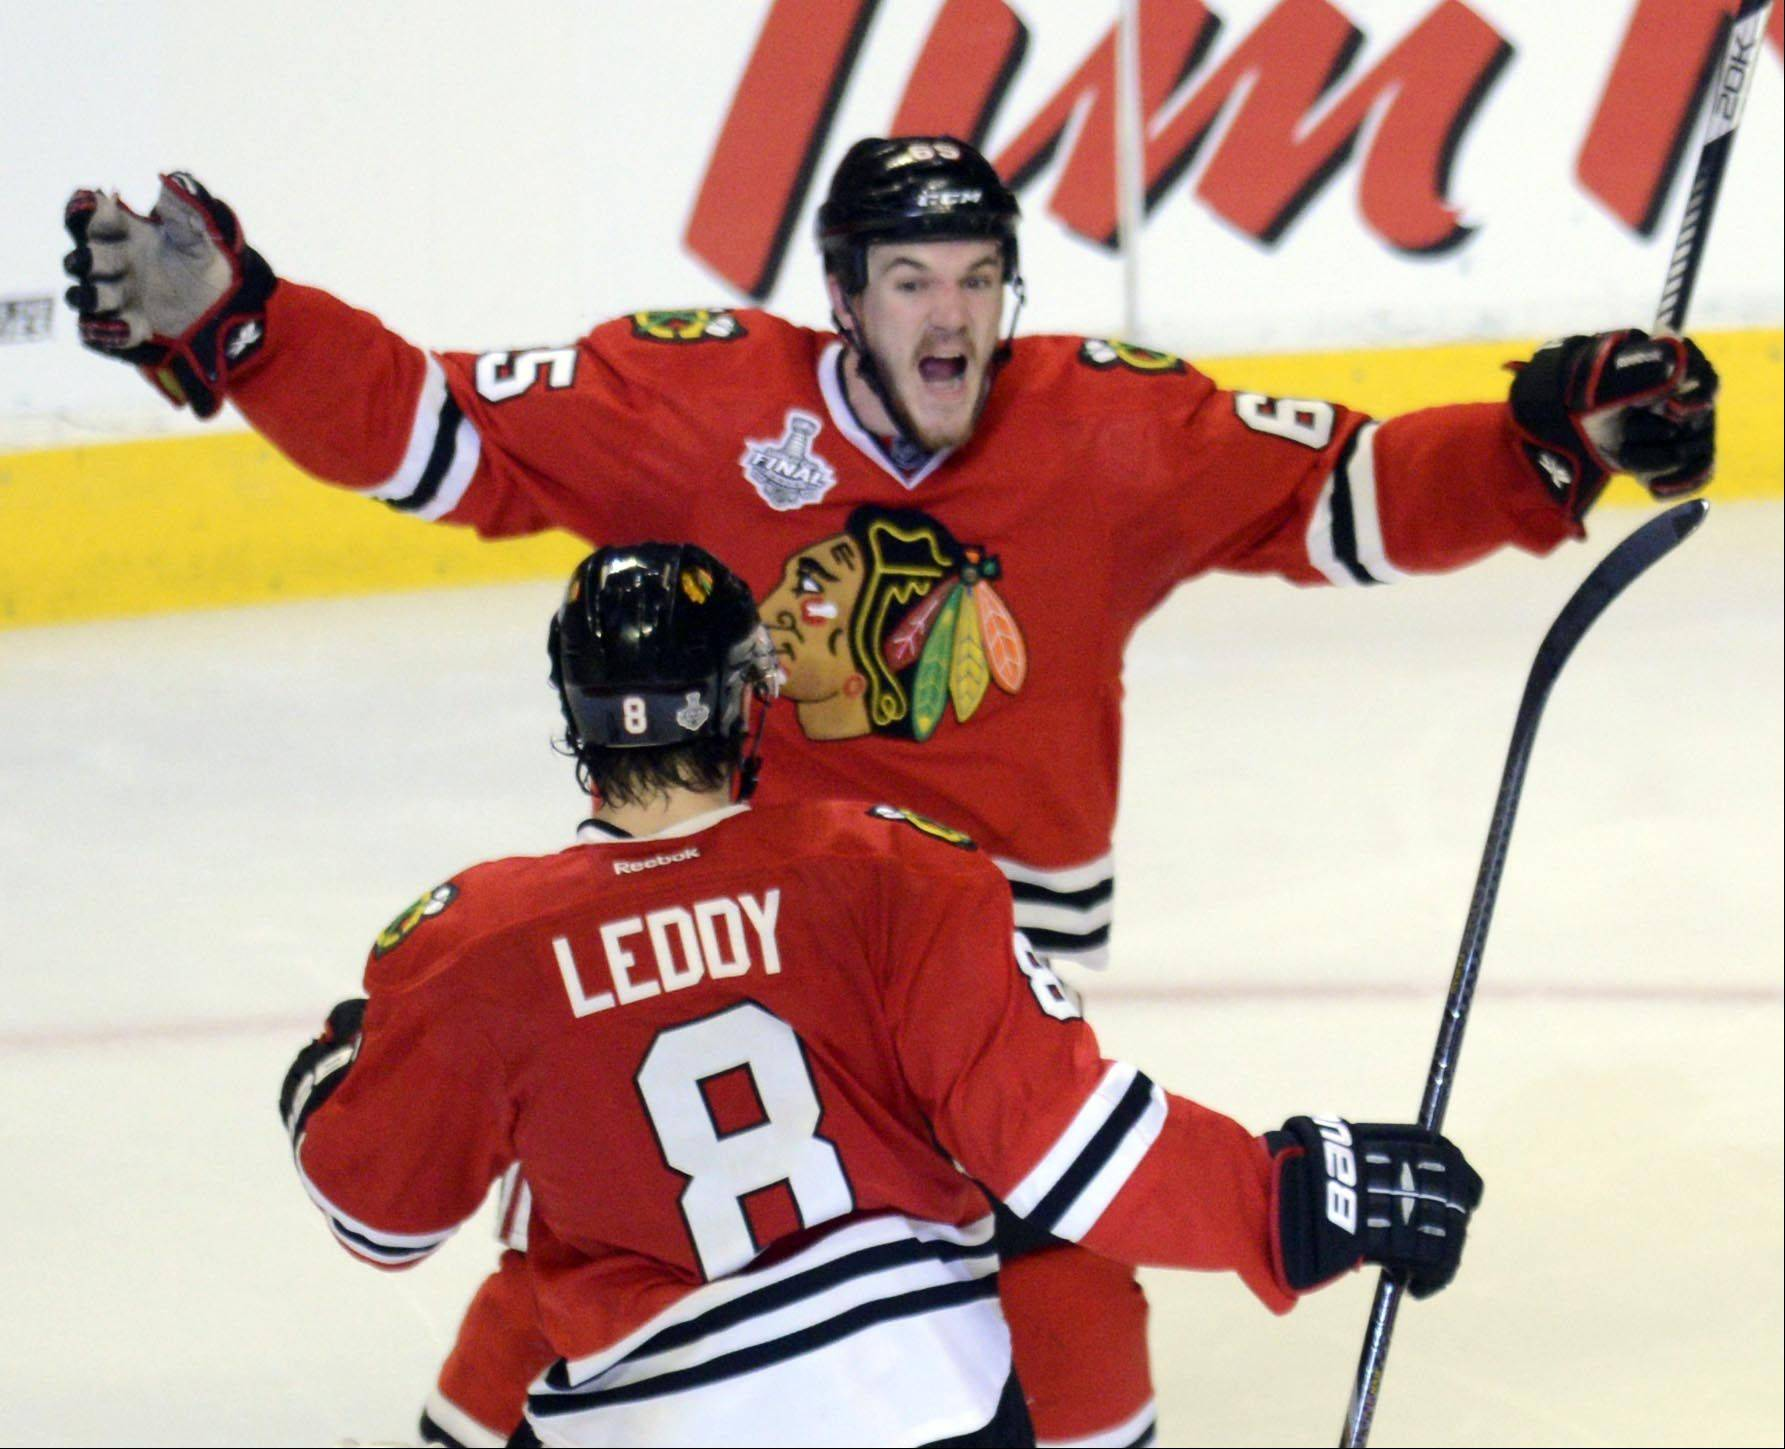 John Starks/jstarks@dailyherald.com Chicago Blackhawks center Andrew Shaw reacts after scoring the game winning goal in the third overtime against the Boston Bruins during Game 1 of the Stanley Cup Finals Wednesday at the Untied Center in Chicago.